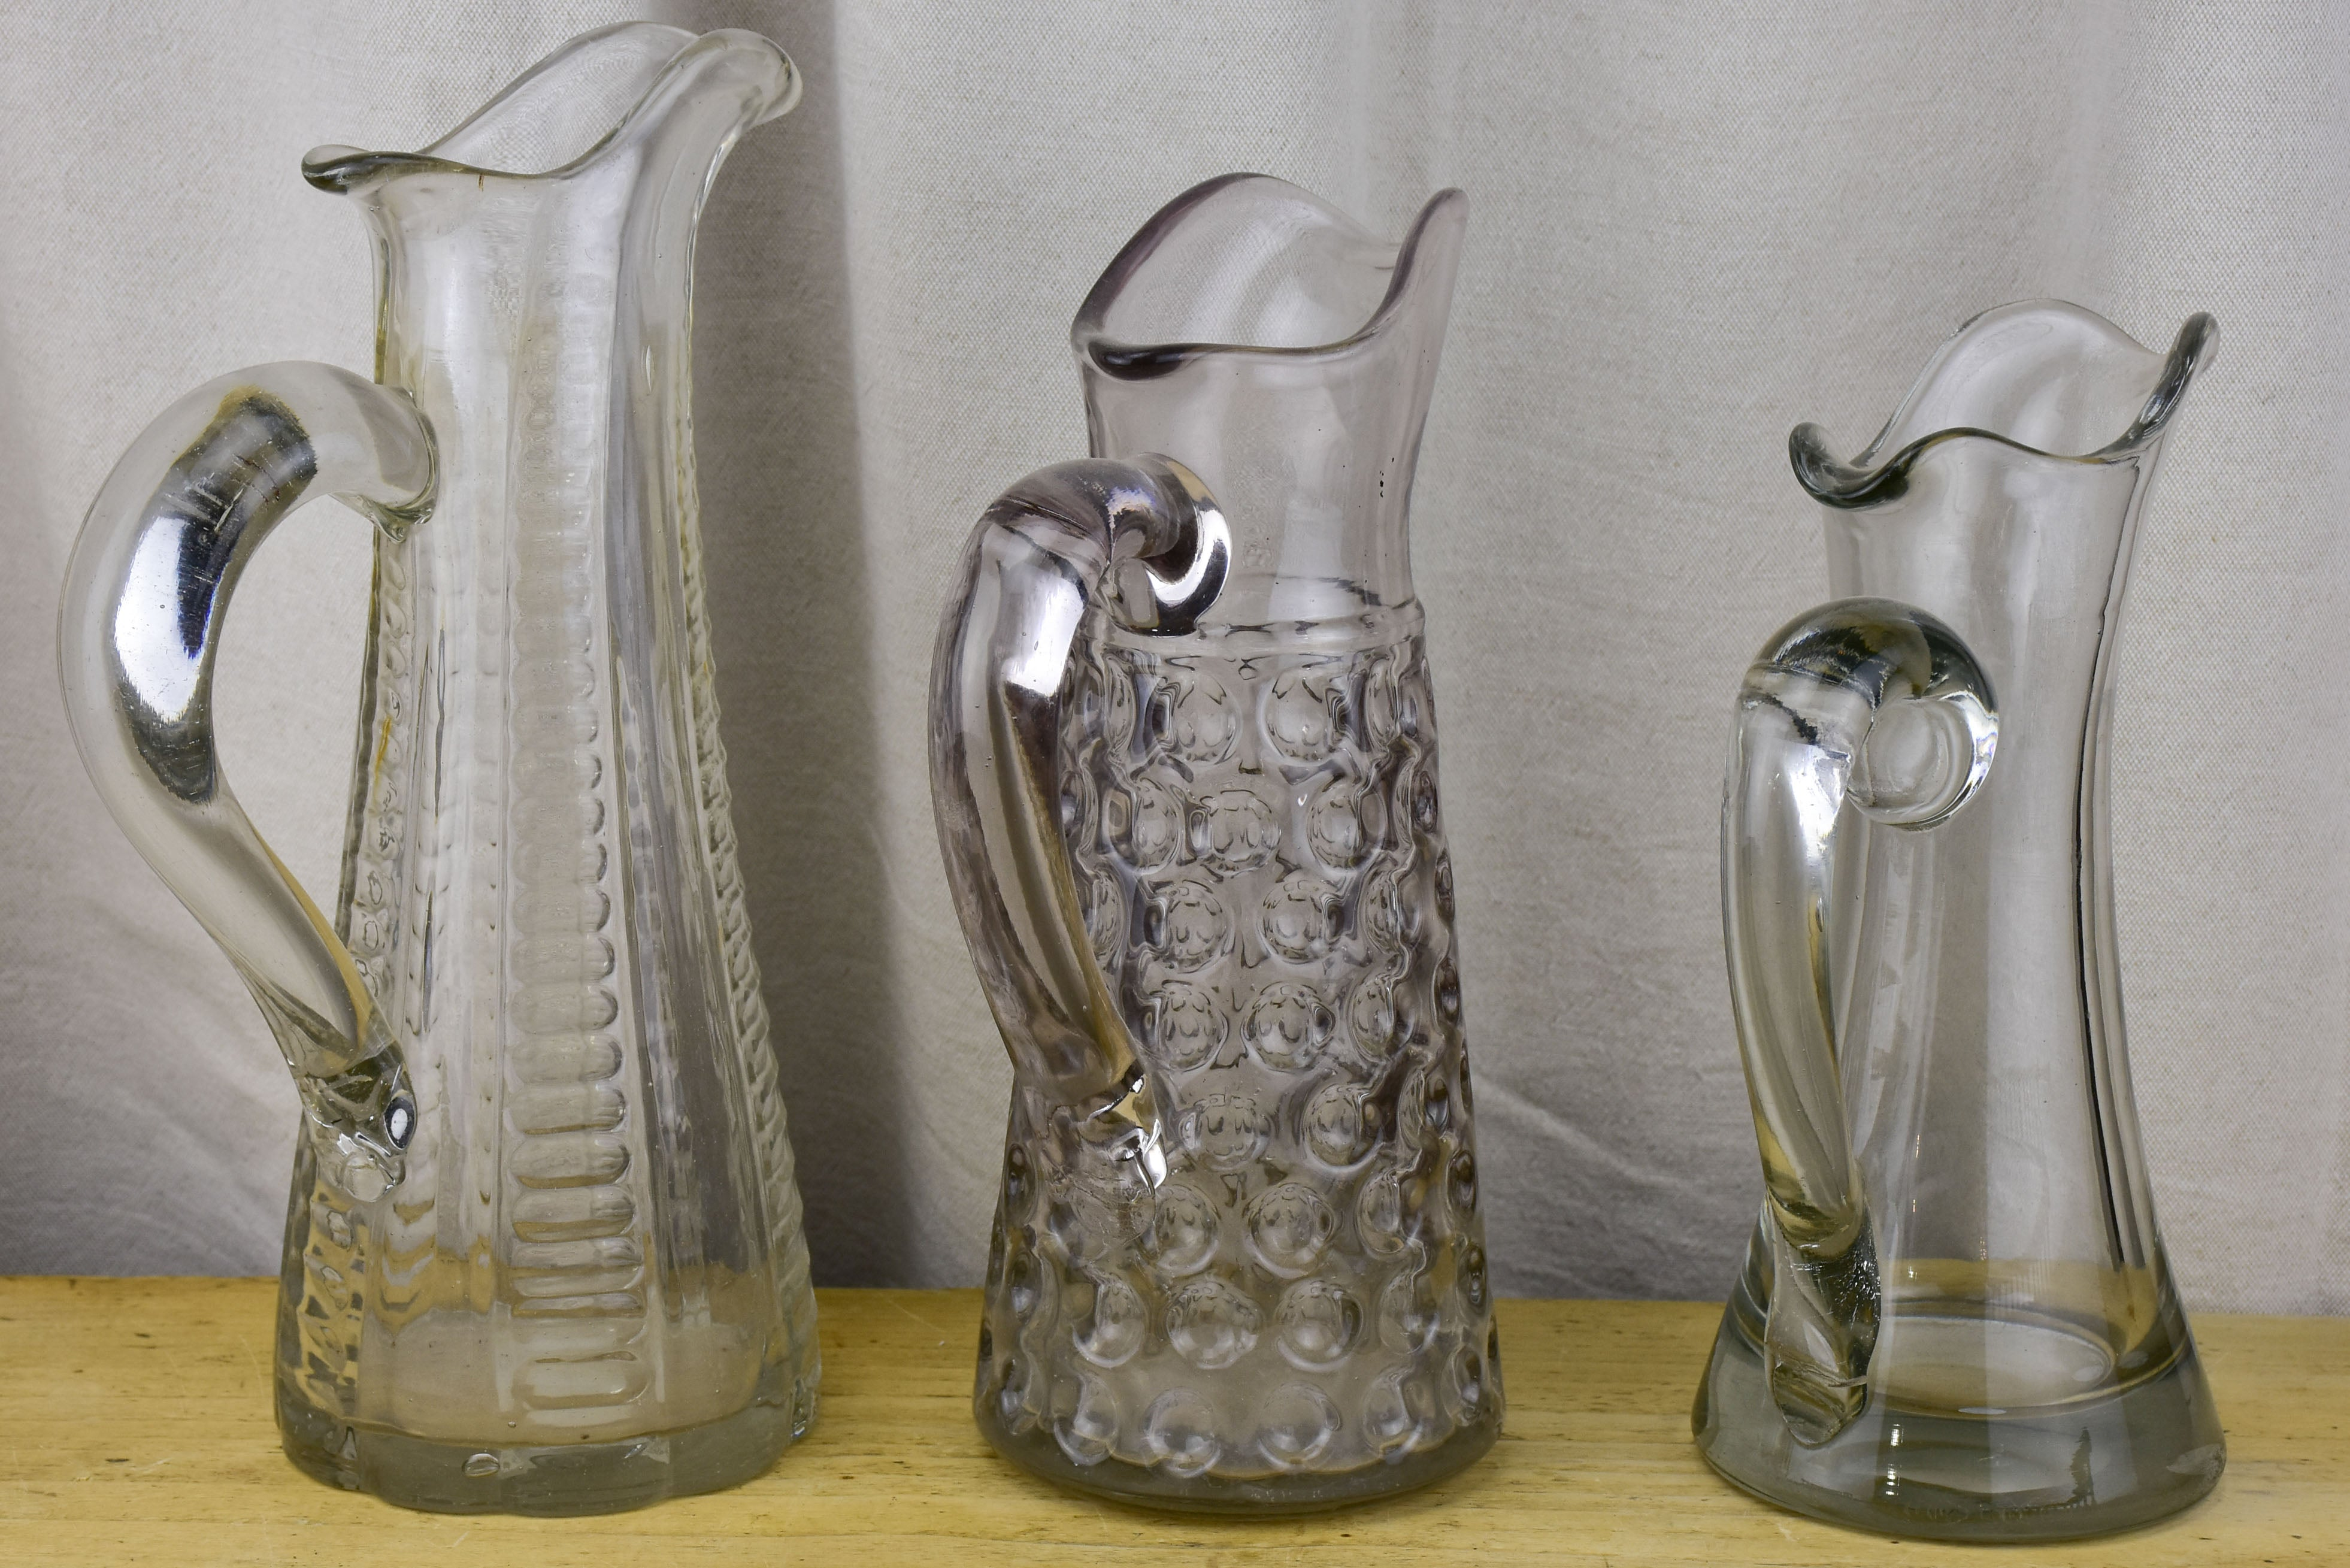 Three antique French pitchers with hand blown glass